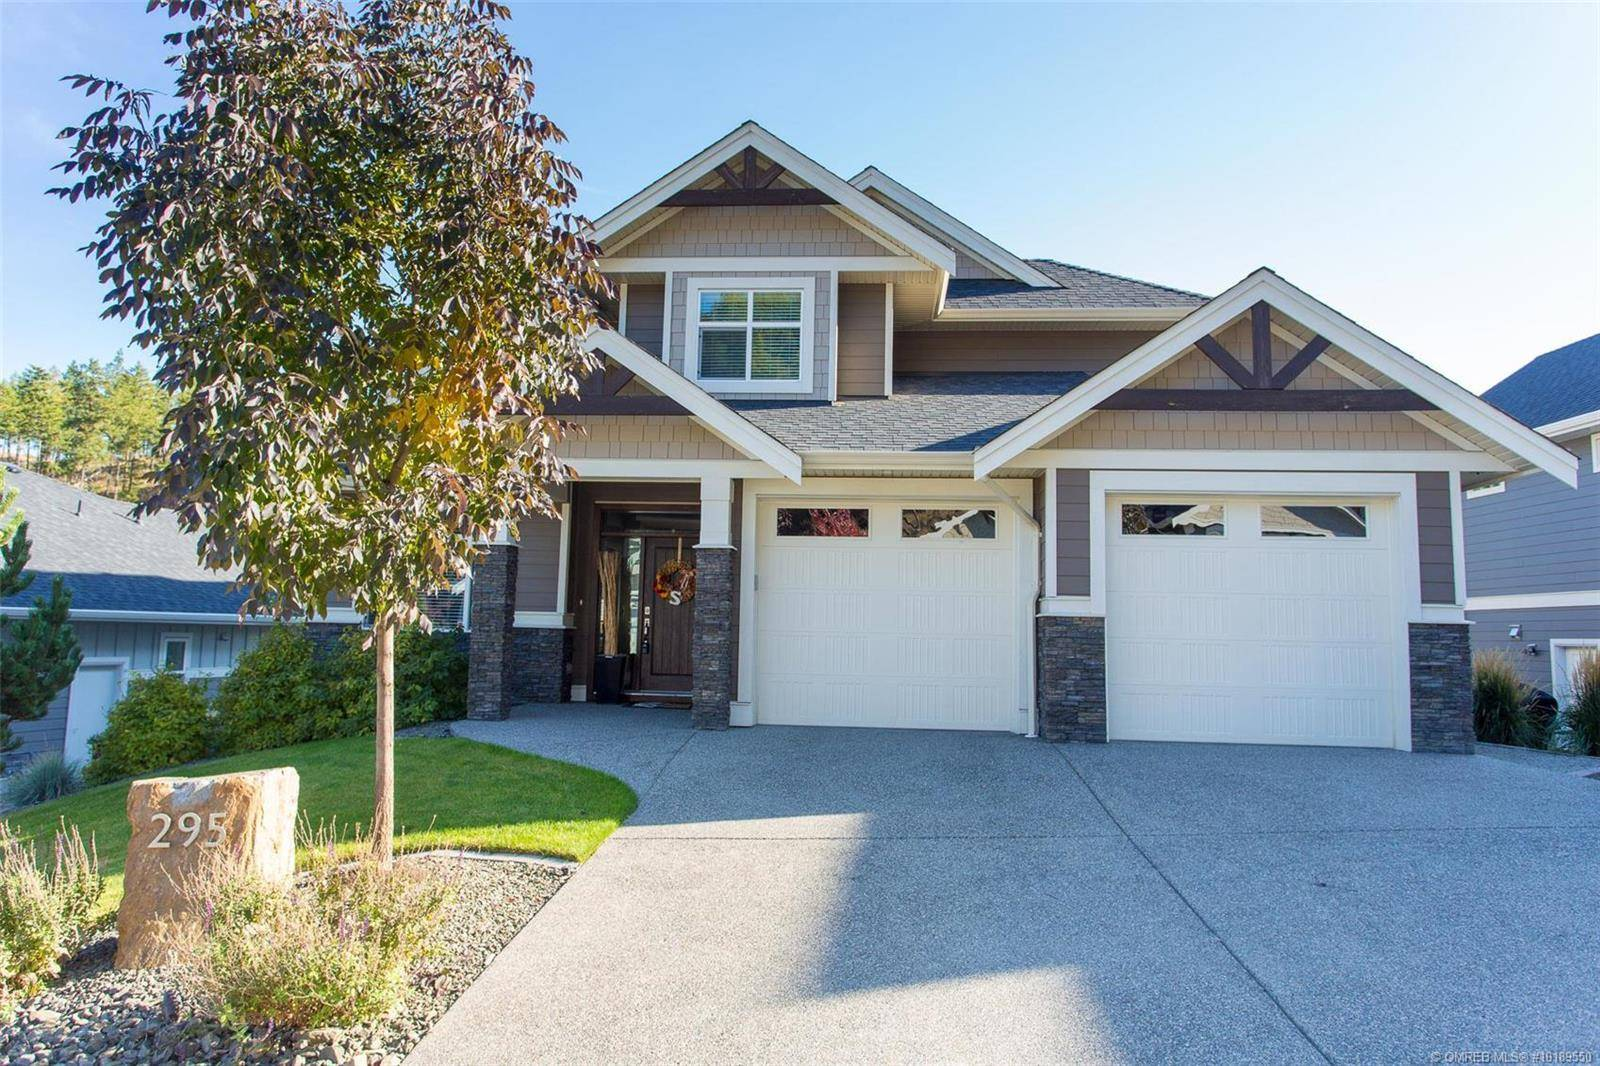 House for sale at 295 Upper Canyon Dr North Kelowna British Columbia - MLS: 10189550